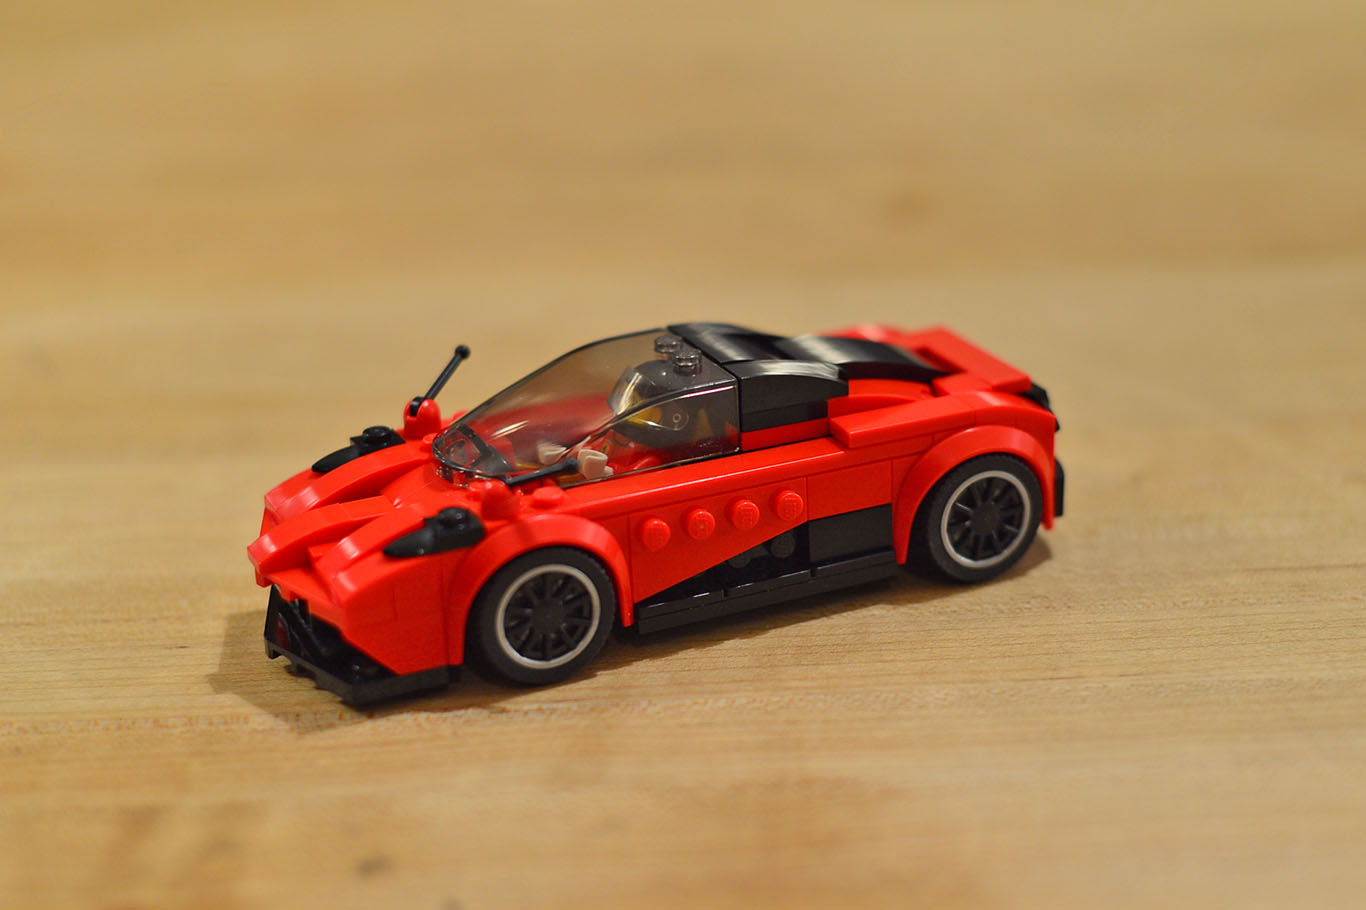 Mercedes 500 E 1993 Wexoncars moreover Lego Speed Ch ions Guess The Car moreover Get Hoverboard Fortnite Pve in addition 2014 Mercedes Benz Vito Drawings as well Classic. on car parts outline